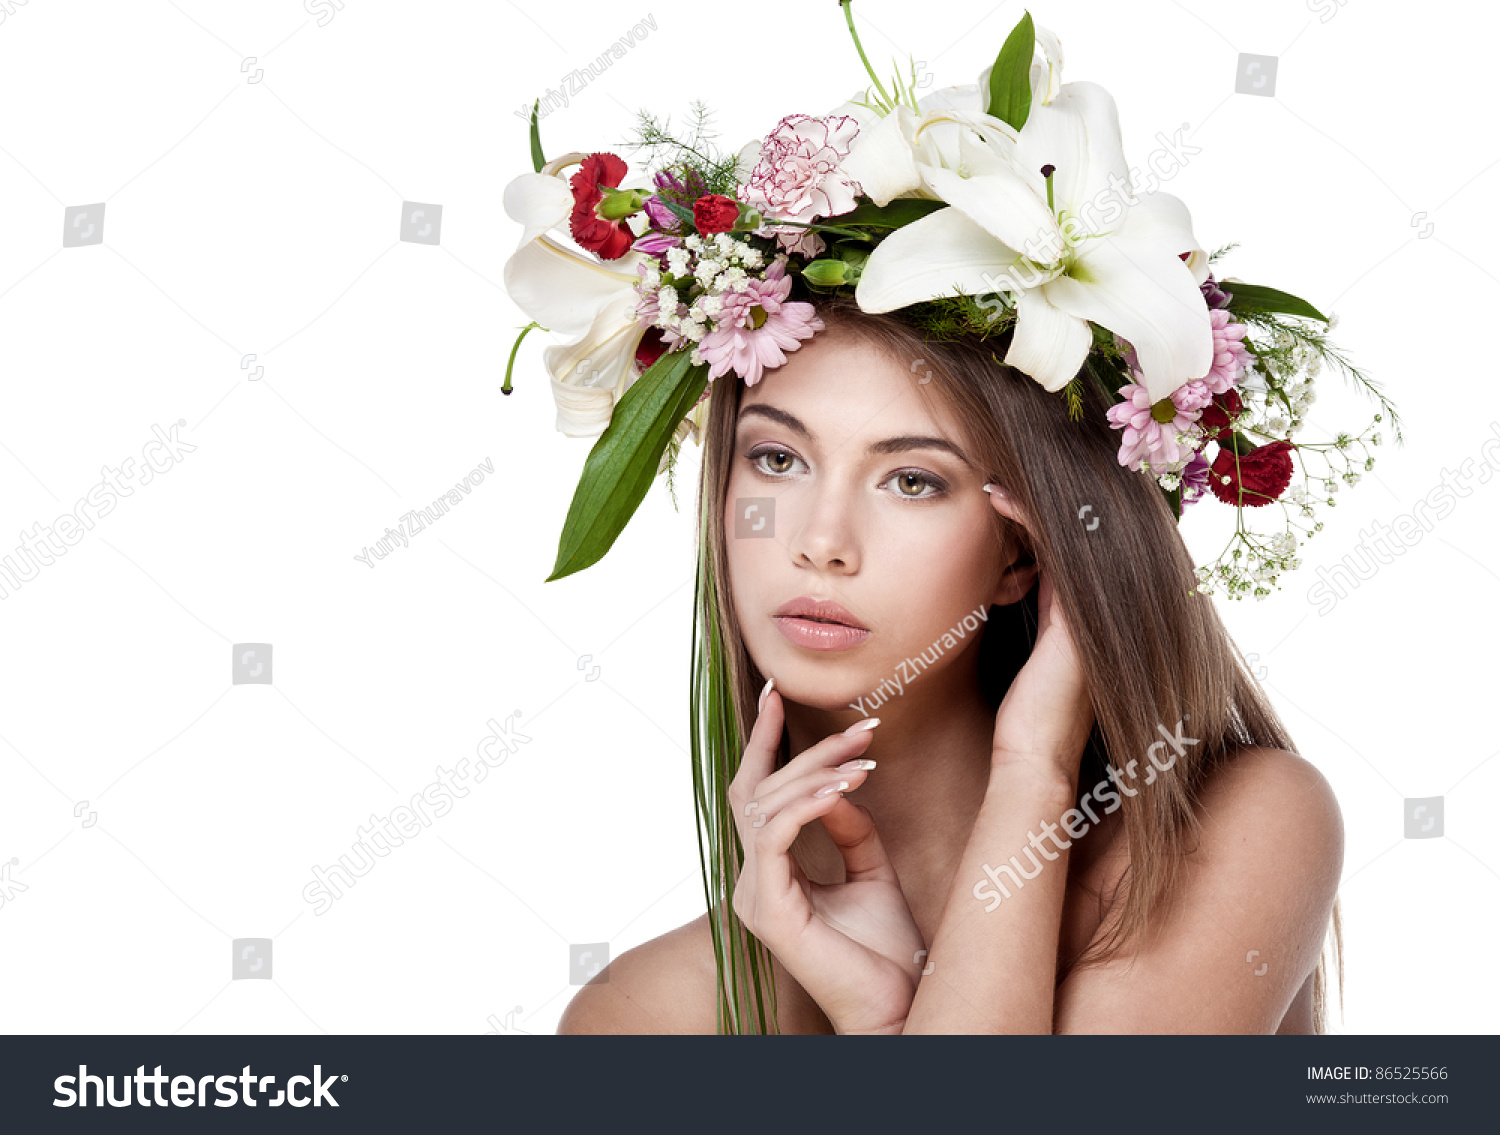 Beautiful woman with flower wreath space for text ez canvas id 86525566 izmirmasajfo